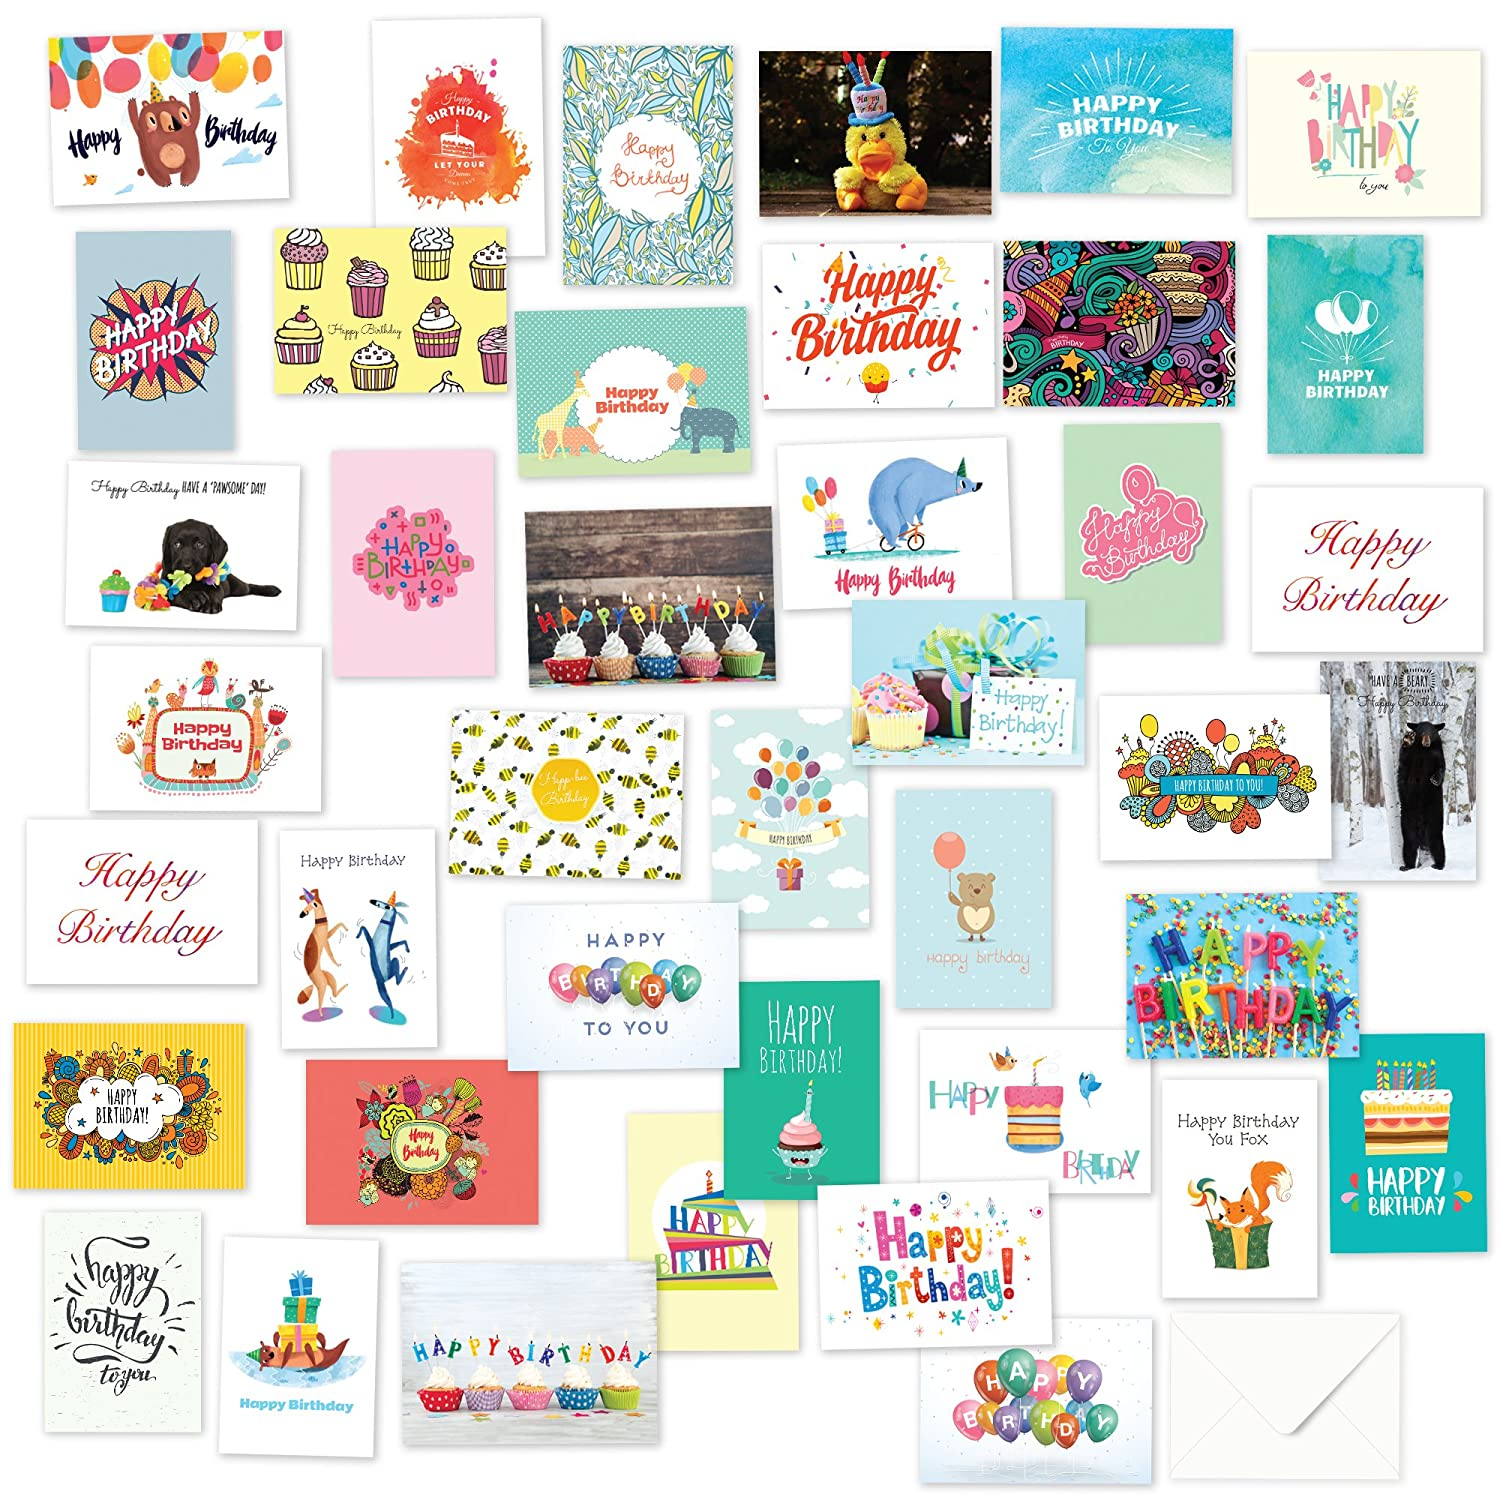 40 Birthday Cards Assortment - Happy Birthday Card Bulk Box Card Sets for Women and Men, Children and Adults - Blank Cards with Envelopes Fresh & Lucky